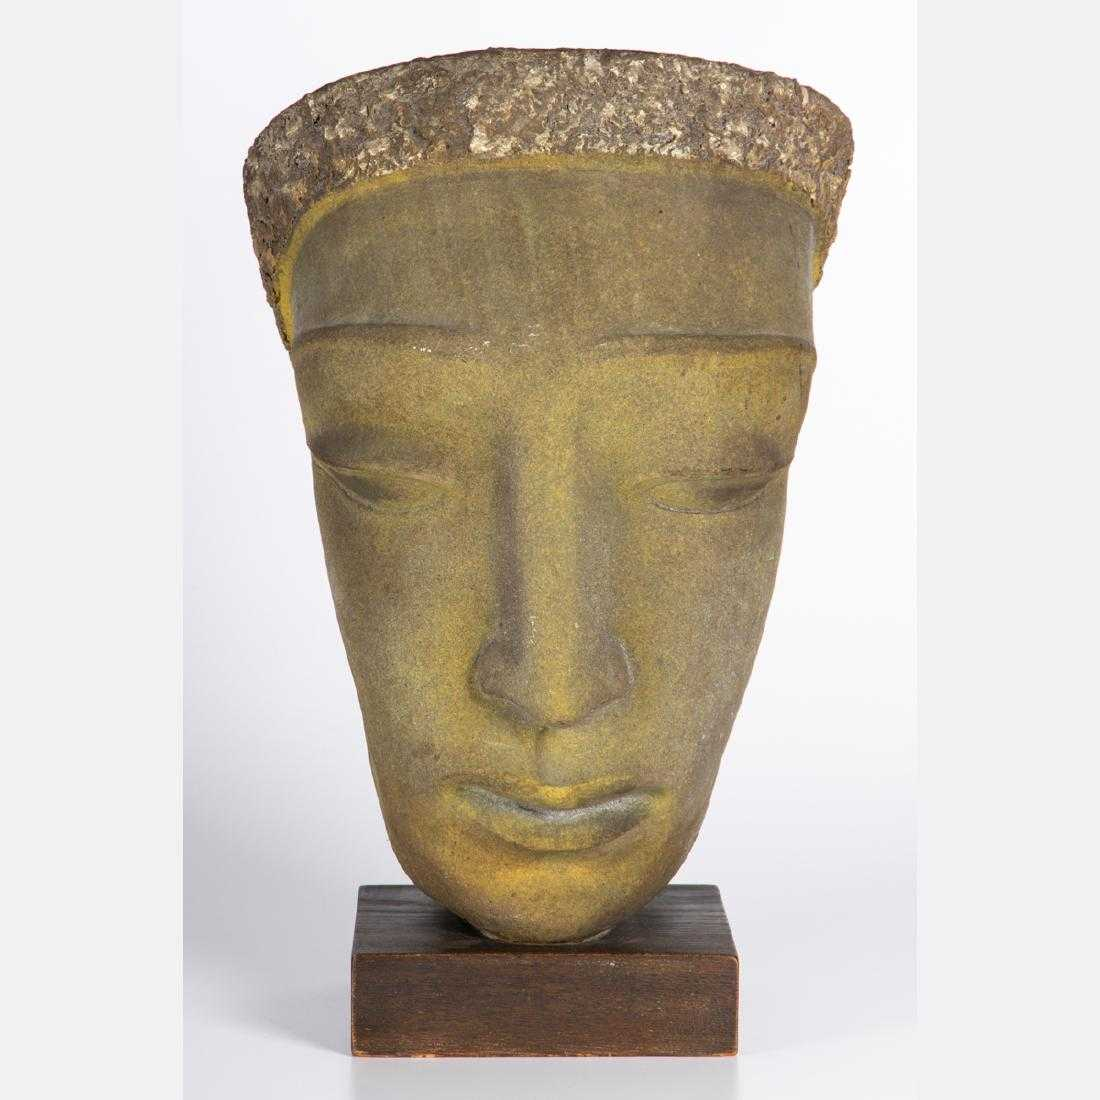 Painted terracotta sculpture titled Head of a Woman by Edris Eckhardt (1905-1998), an American artist associated with the Cleveland School, 19 inches tall (est. $3,000-$5,000).